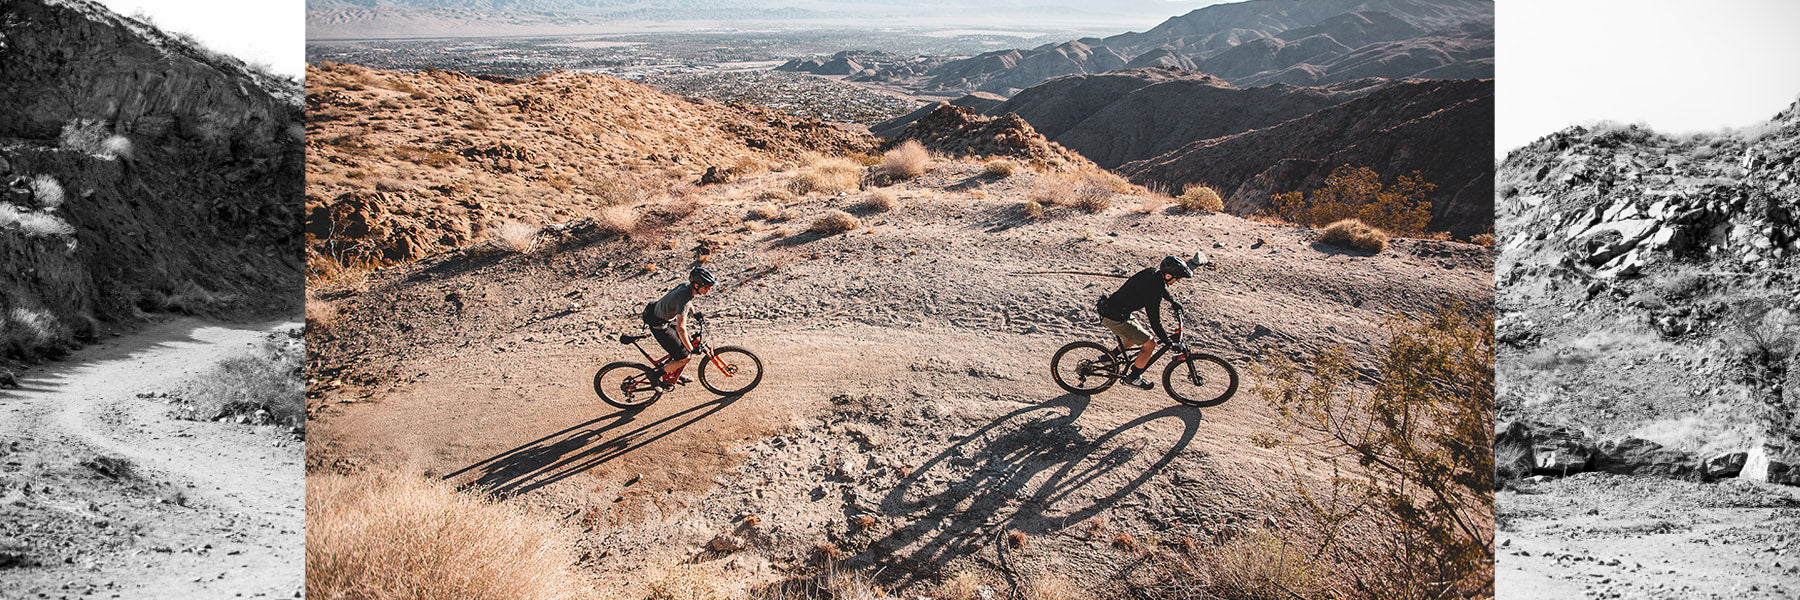 Matt and Jeremy riding in Palm Canyon CA showing the TASCO MTB apparel